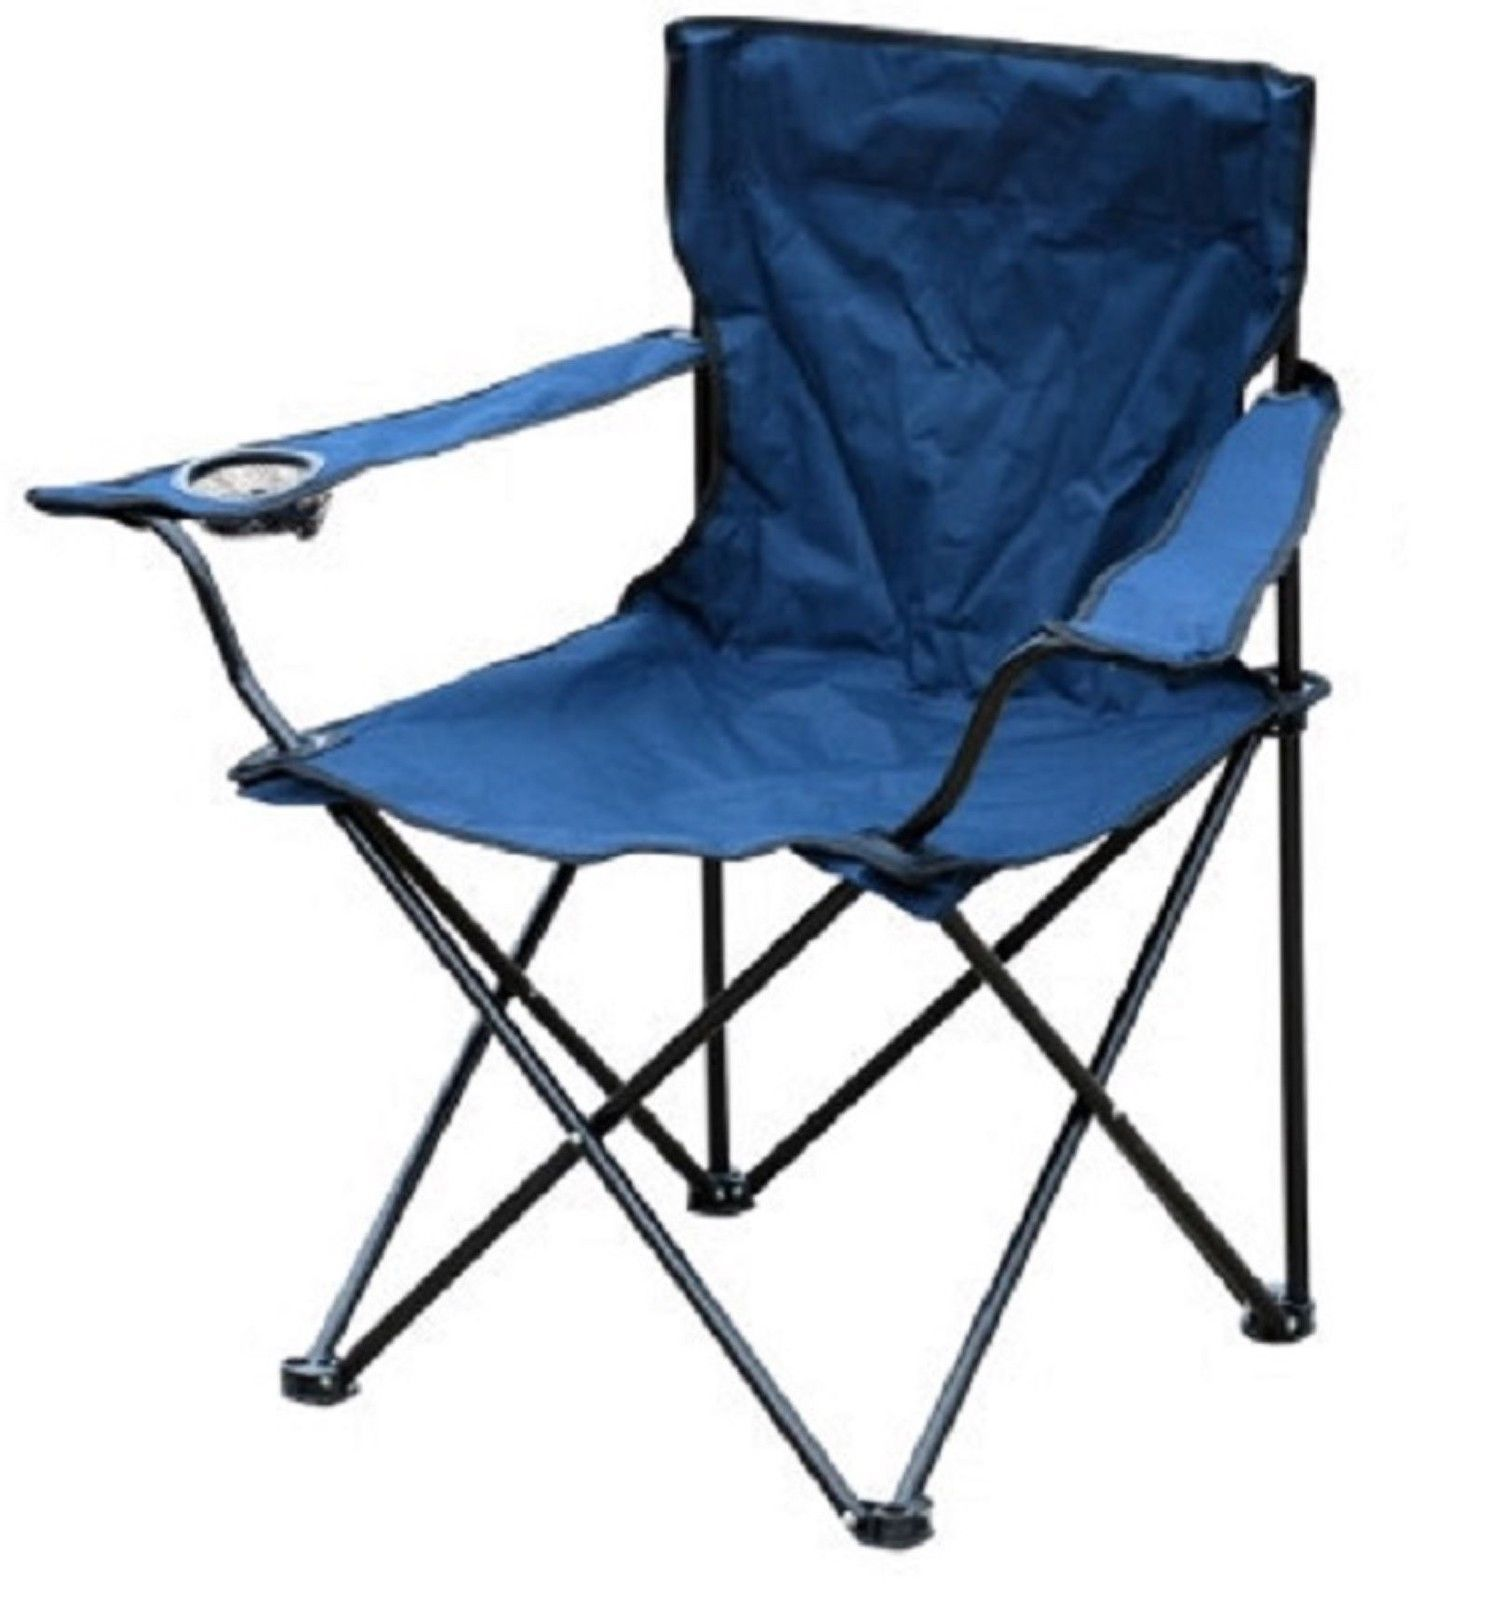 Foldable Chair Brand New Lightweight Portable Outdoor Camping Garden